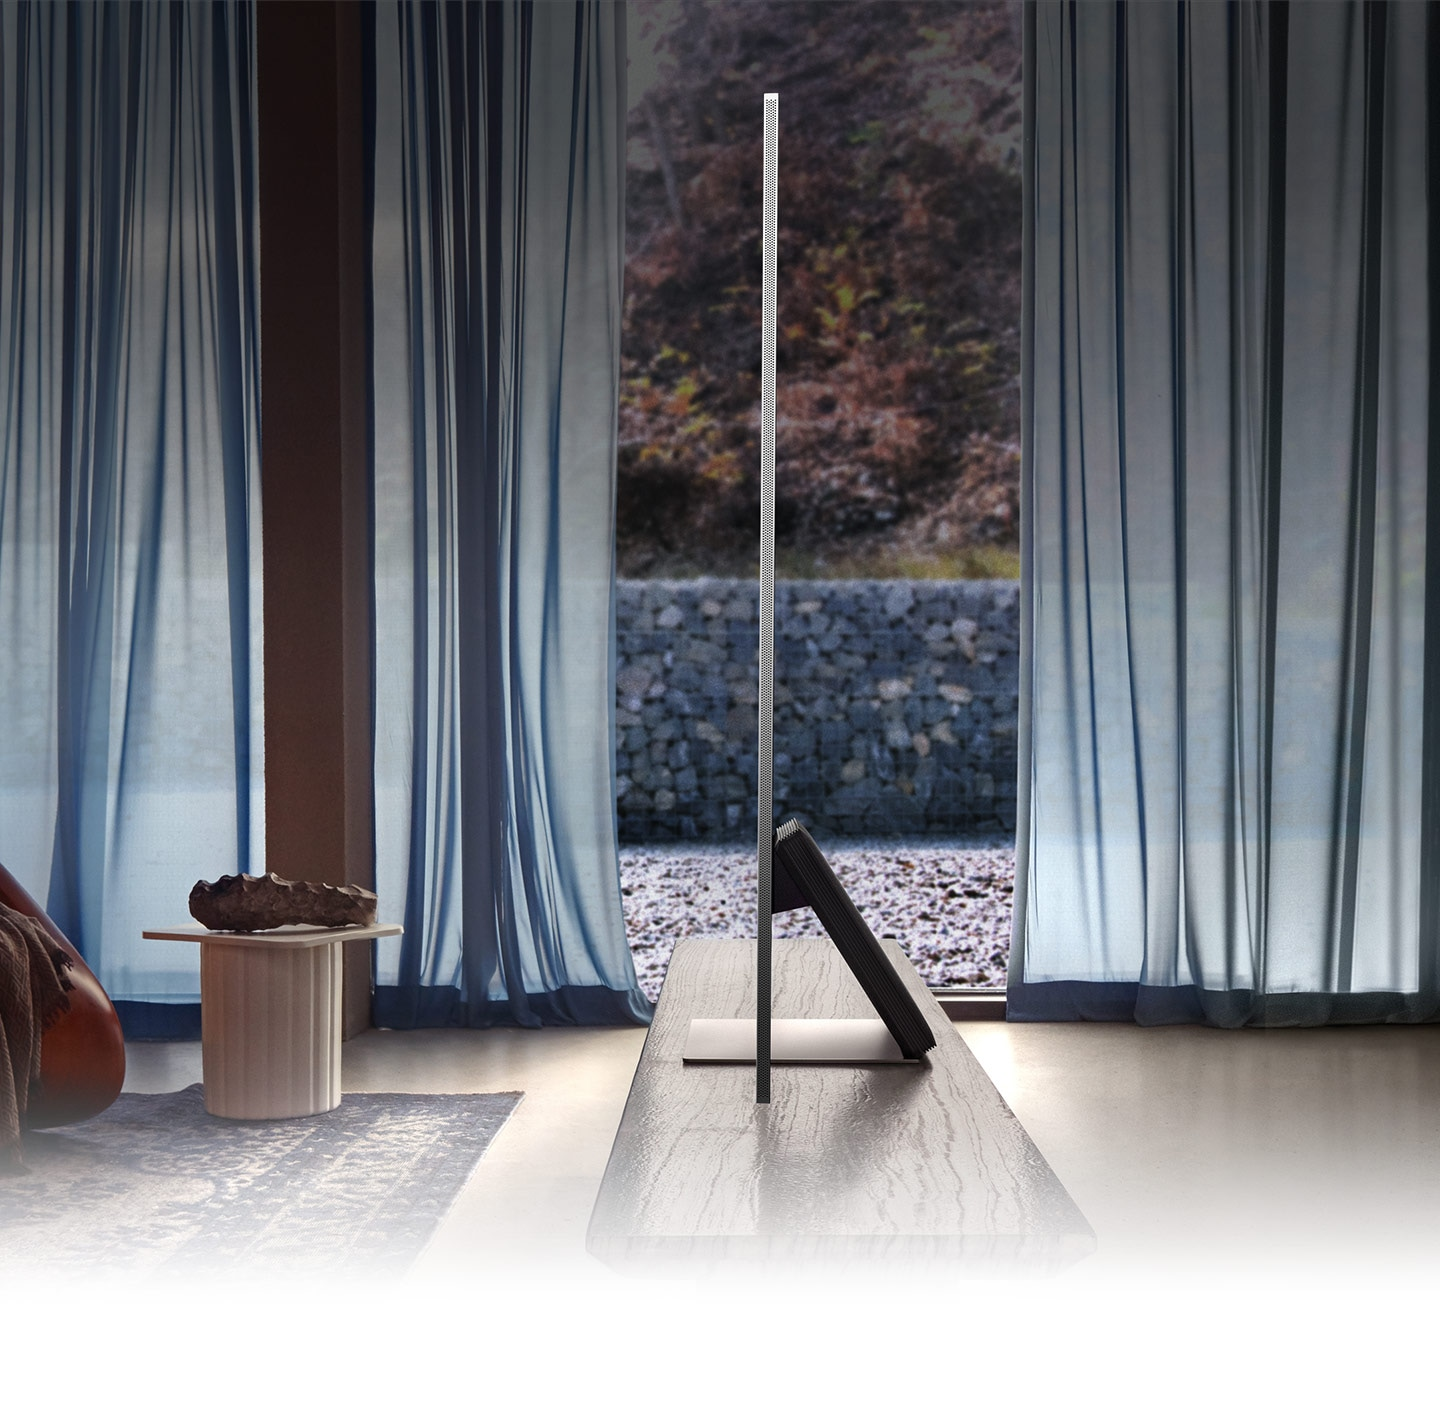 QLED TV, which is extremely thin, is placed in the living room on the side.